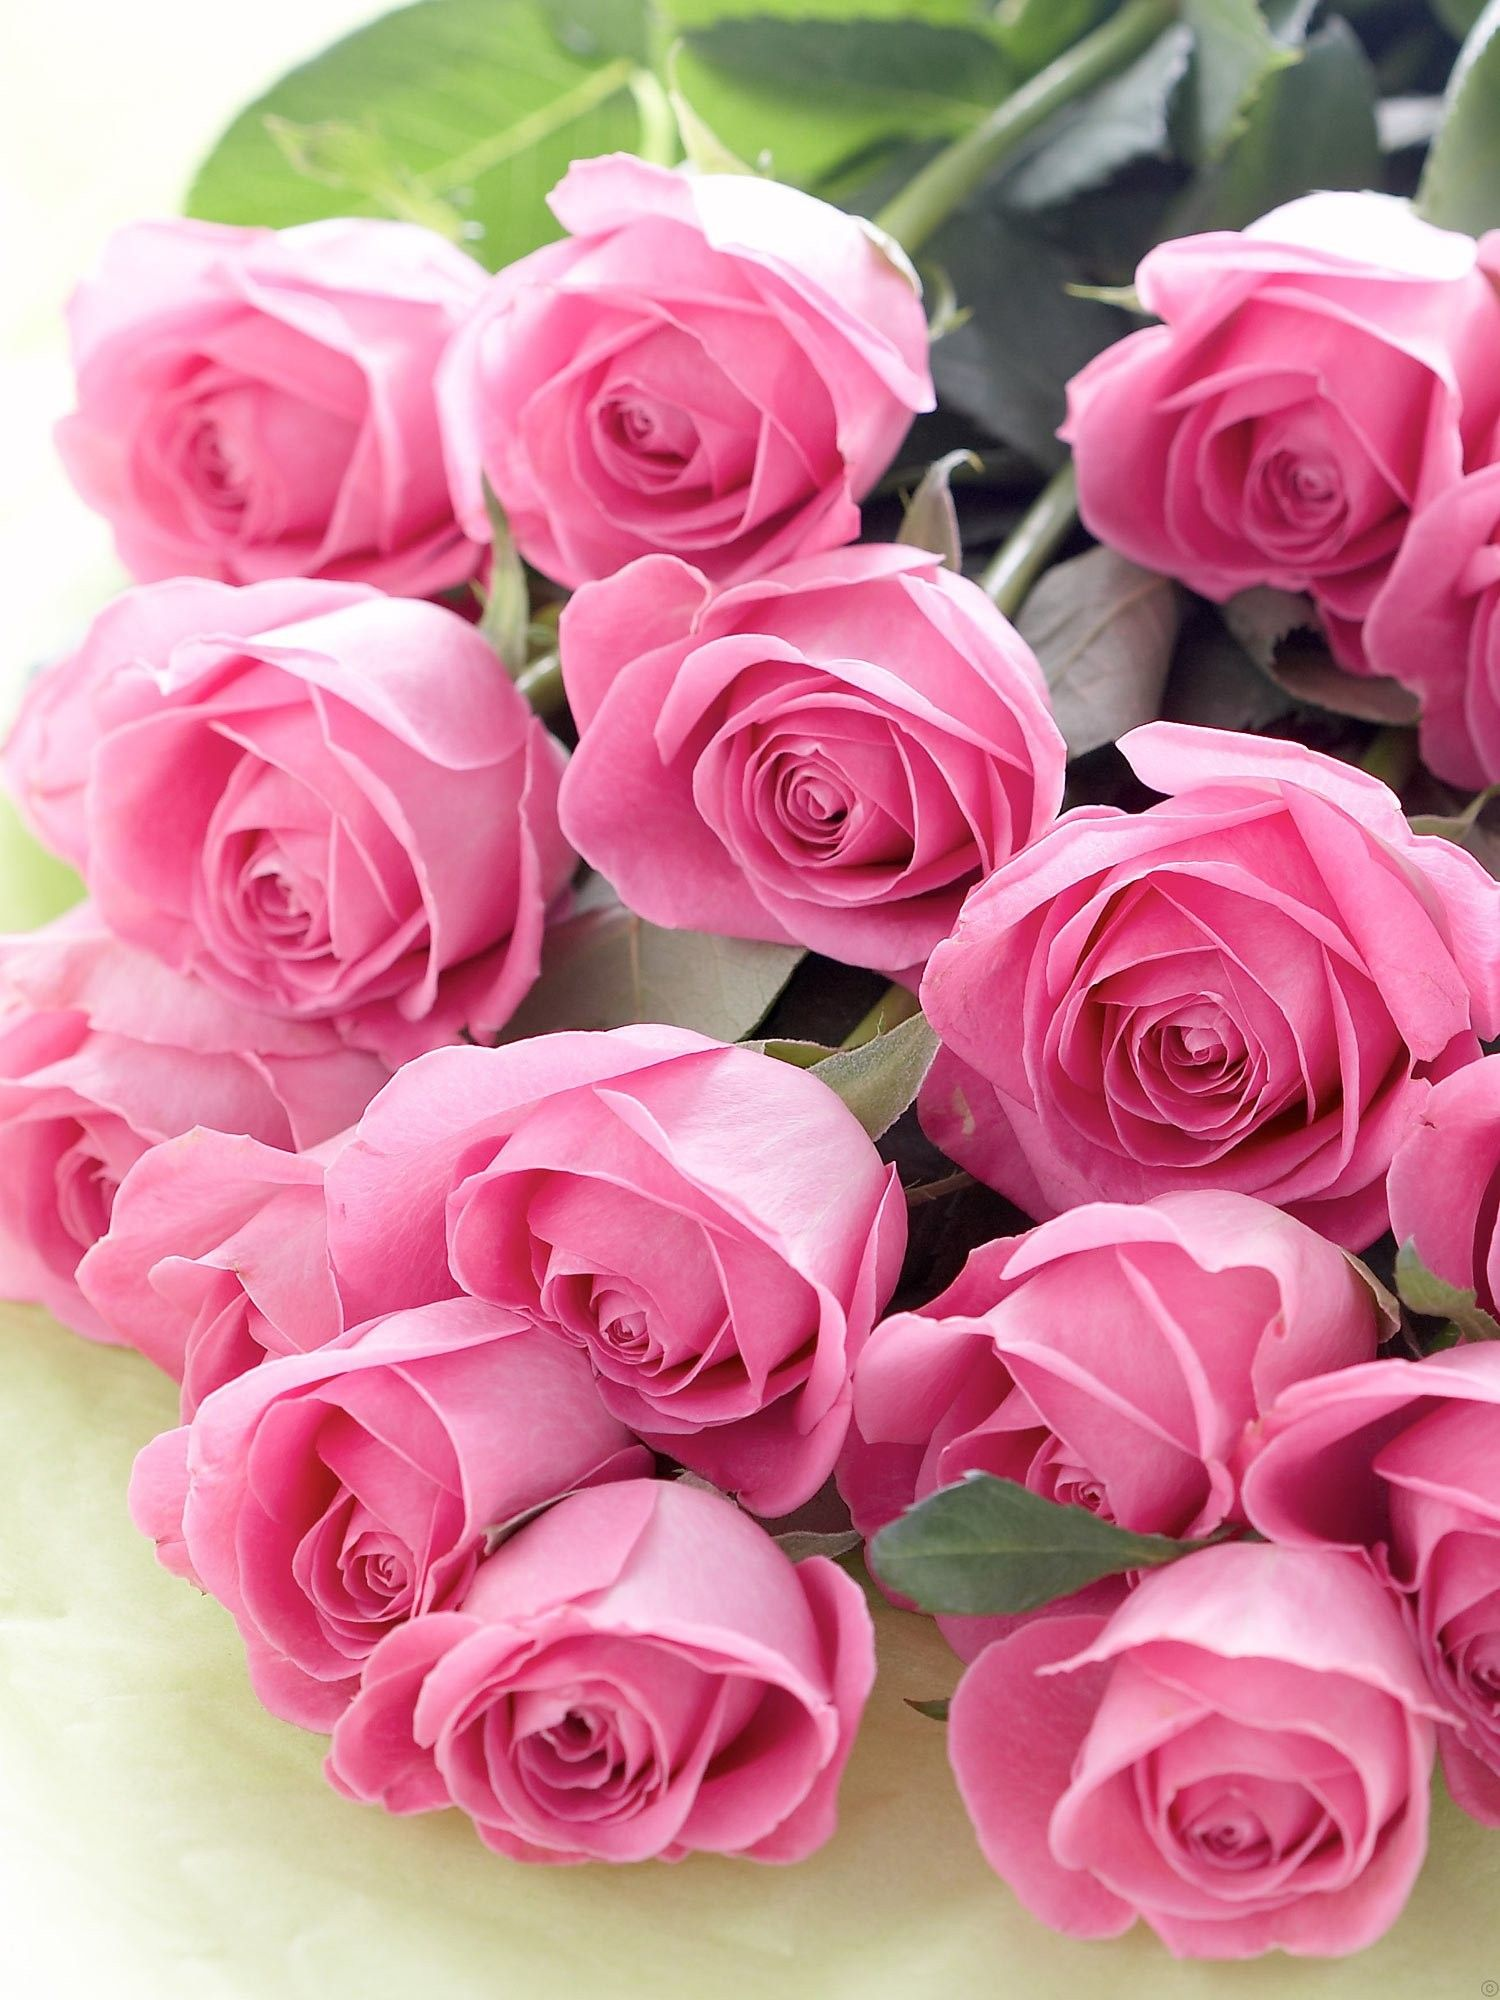 Beautiful pink roses make lovely decorative flowers for a